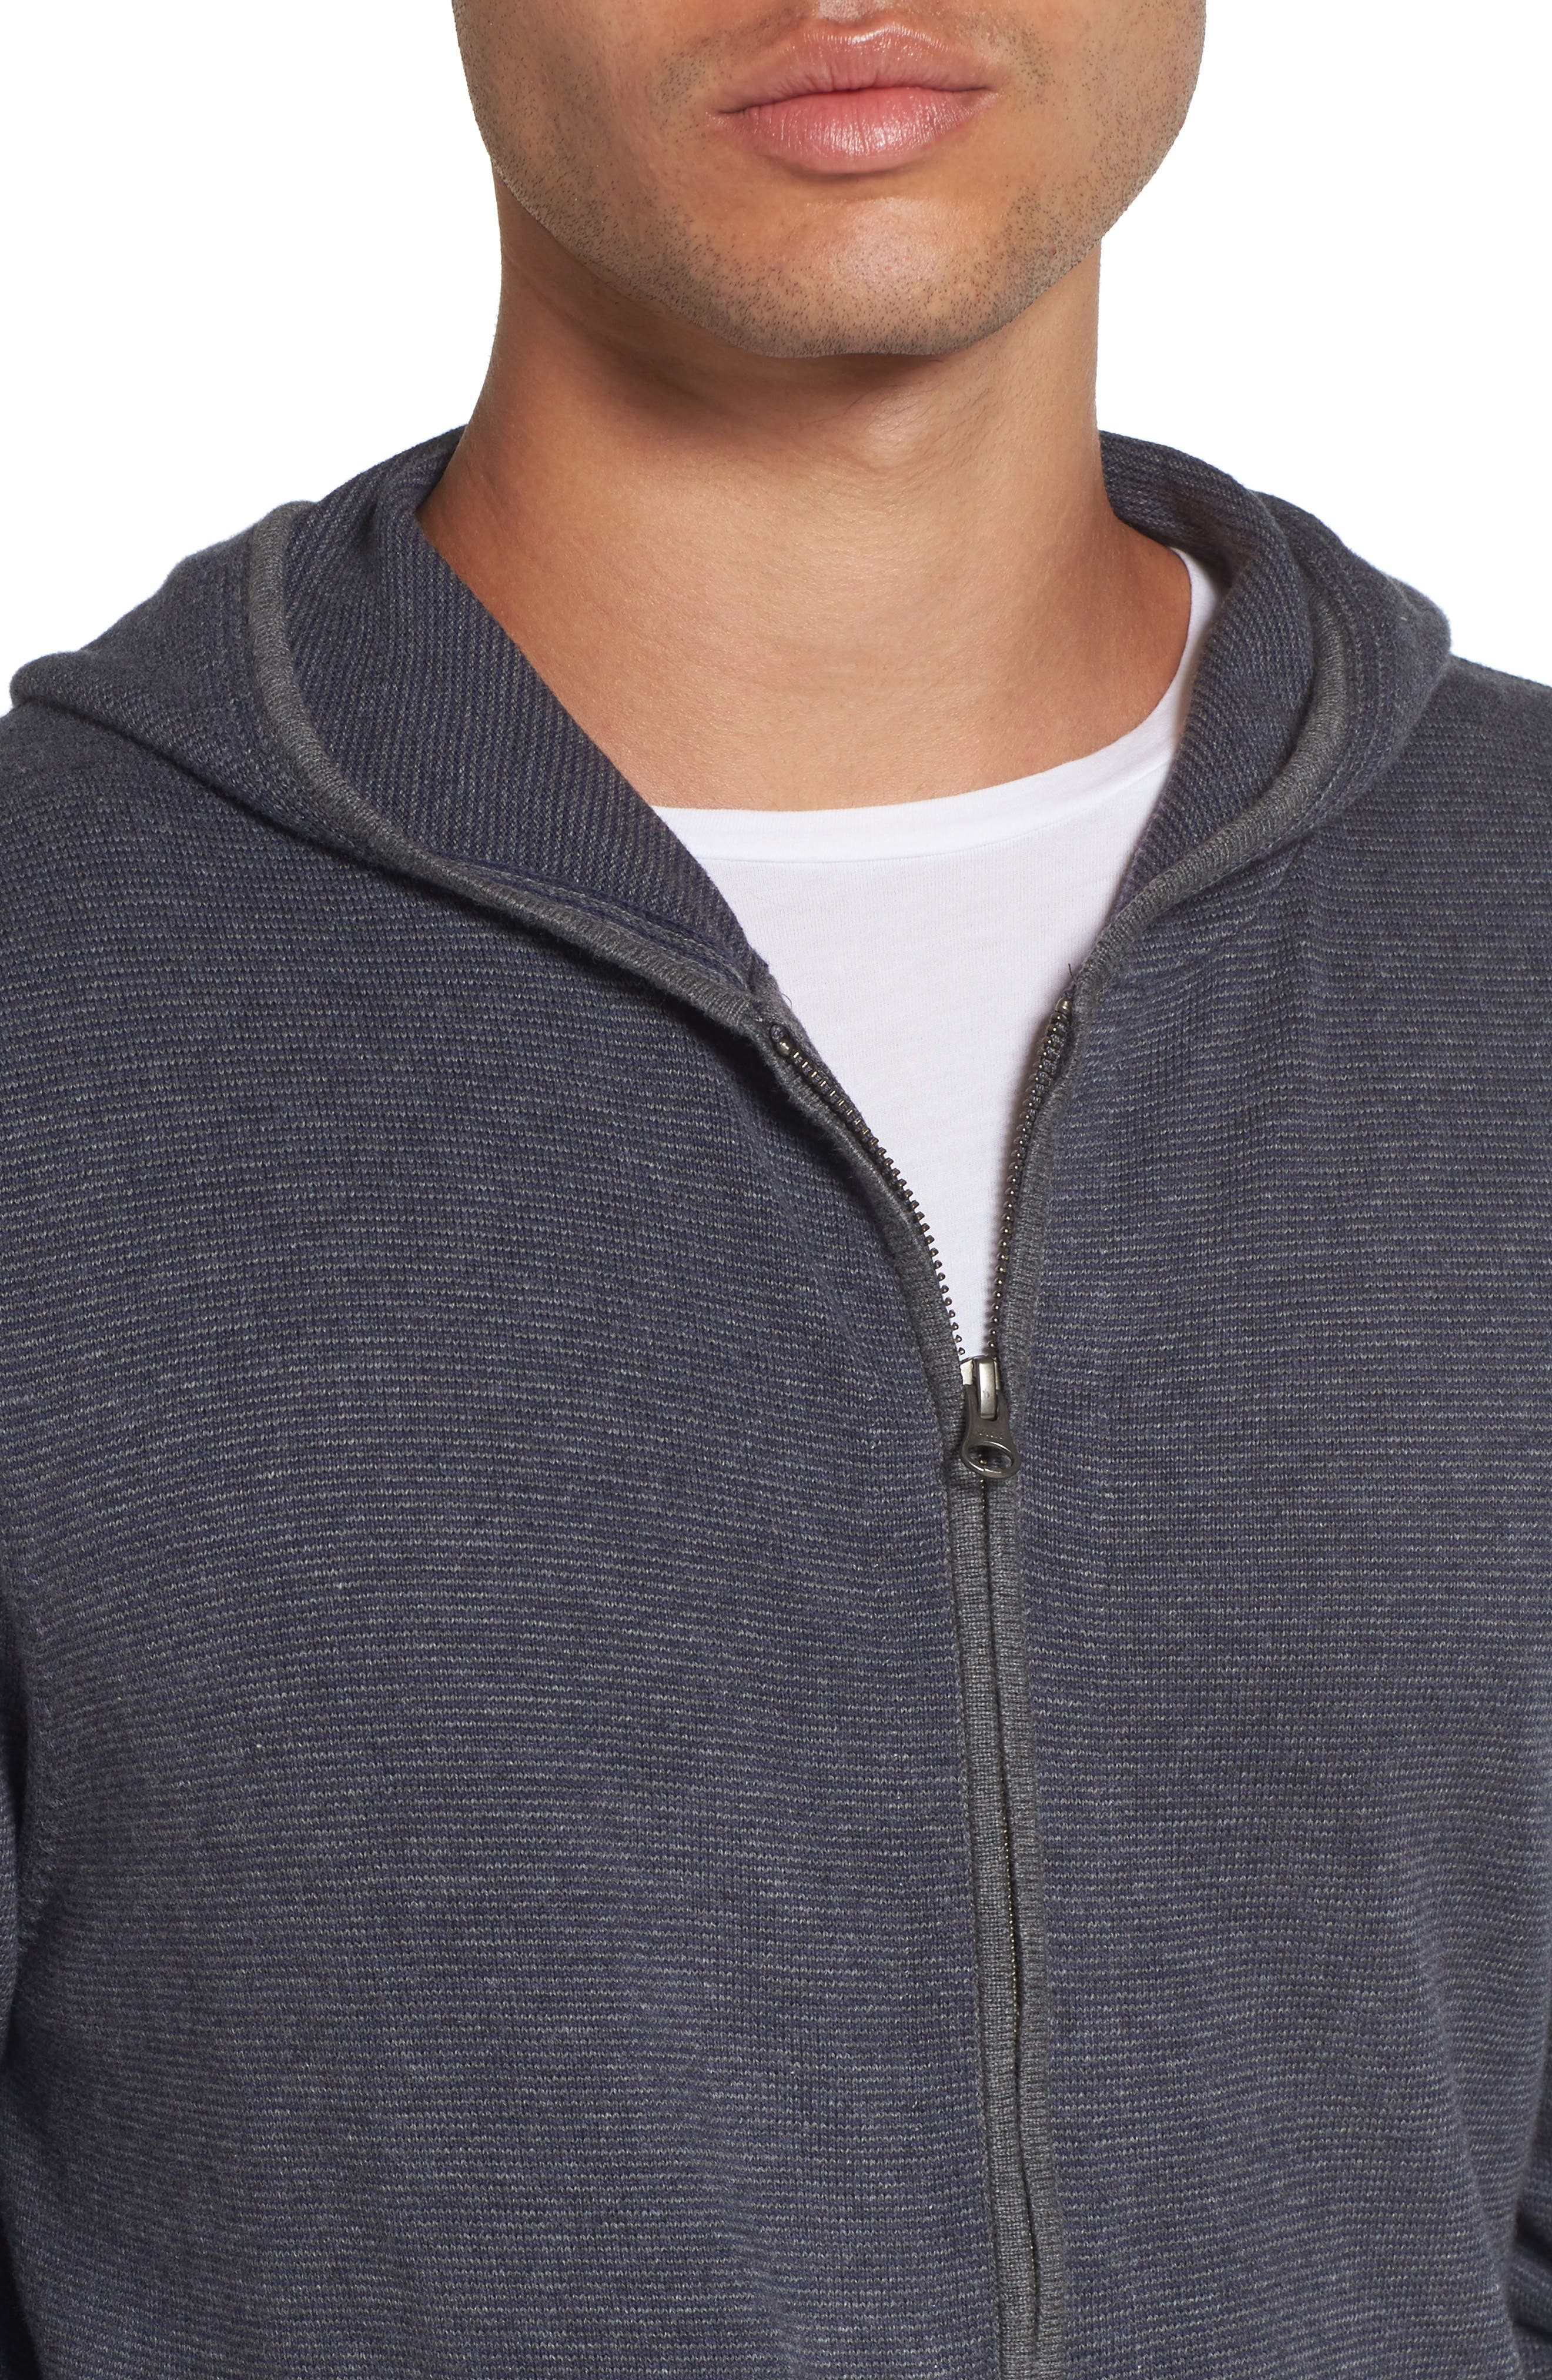 Zip Front Hooded Sweater,                             Alternate thumbnail 11, color,